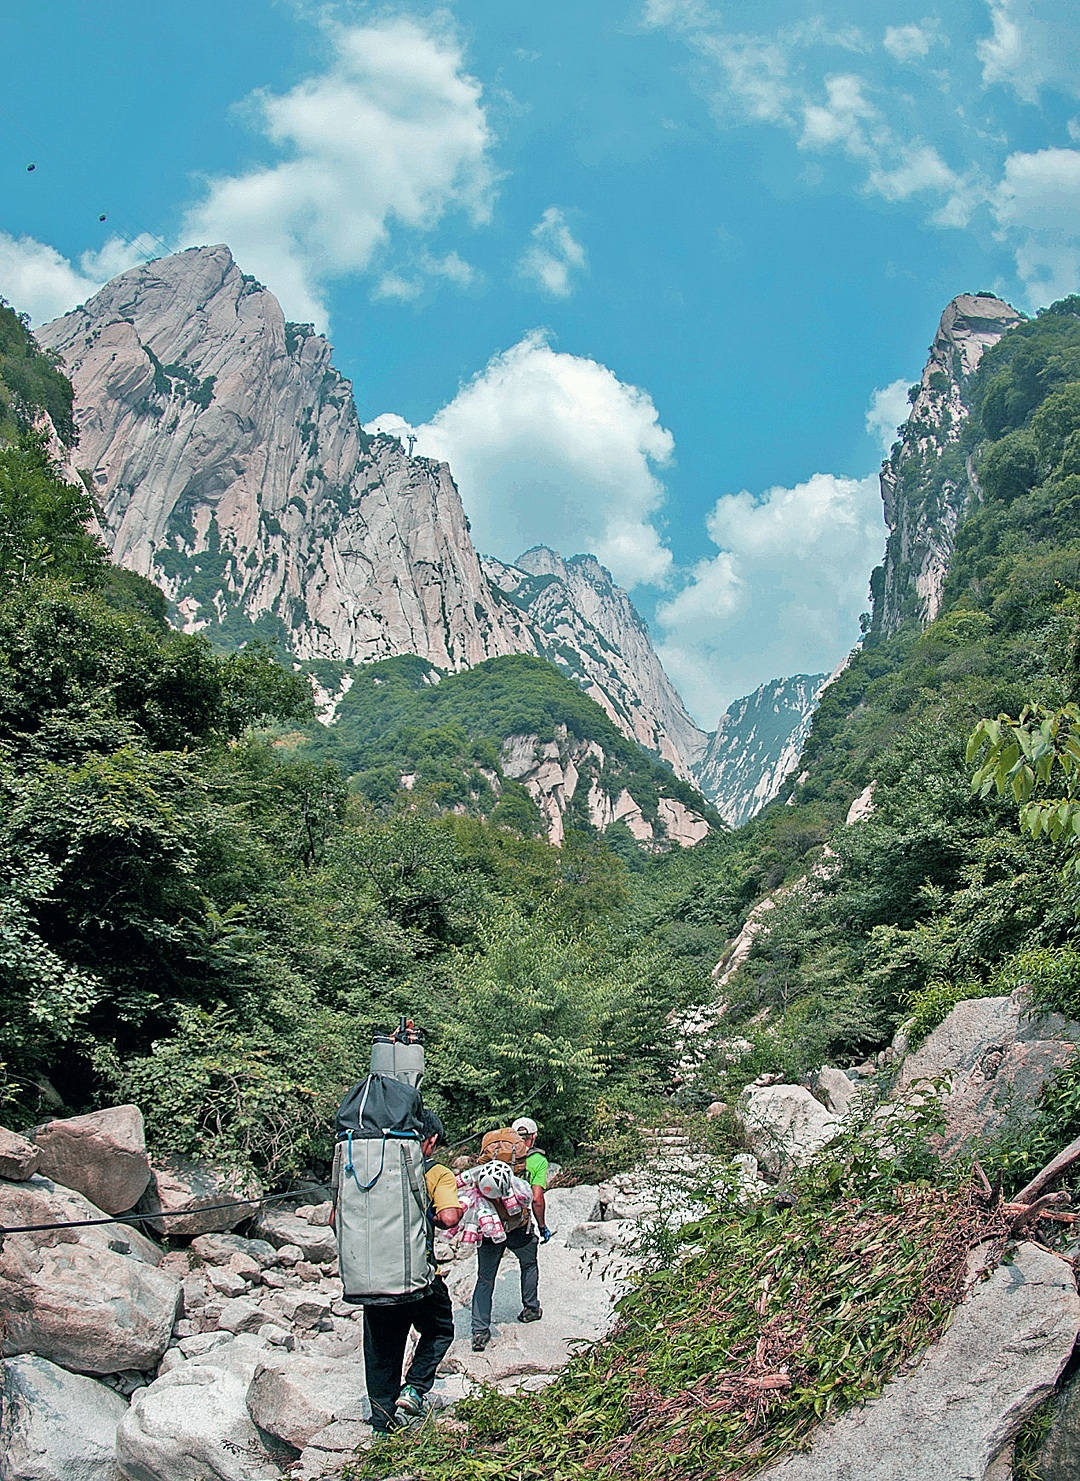 Approaching the granite towers of the Hua Shan.